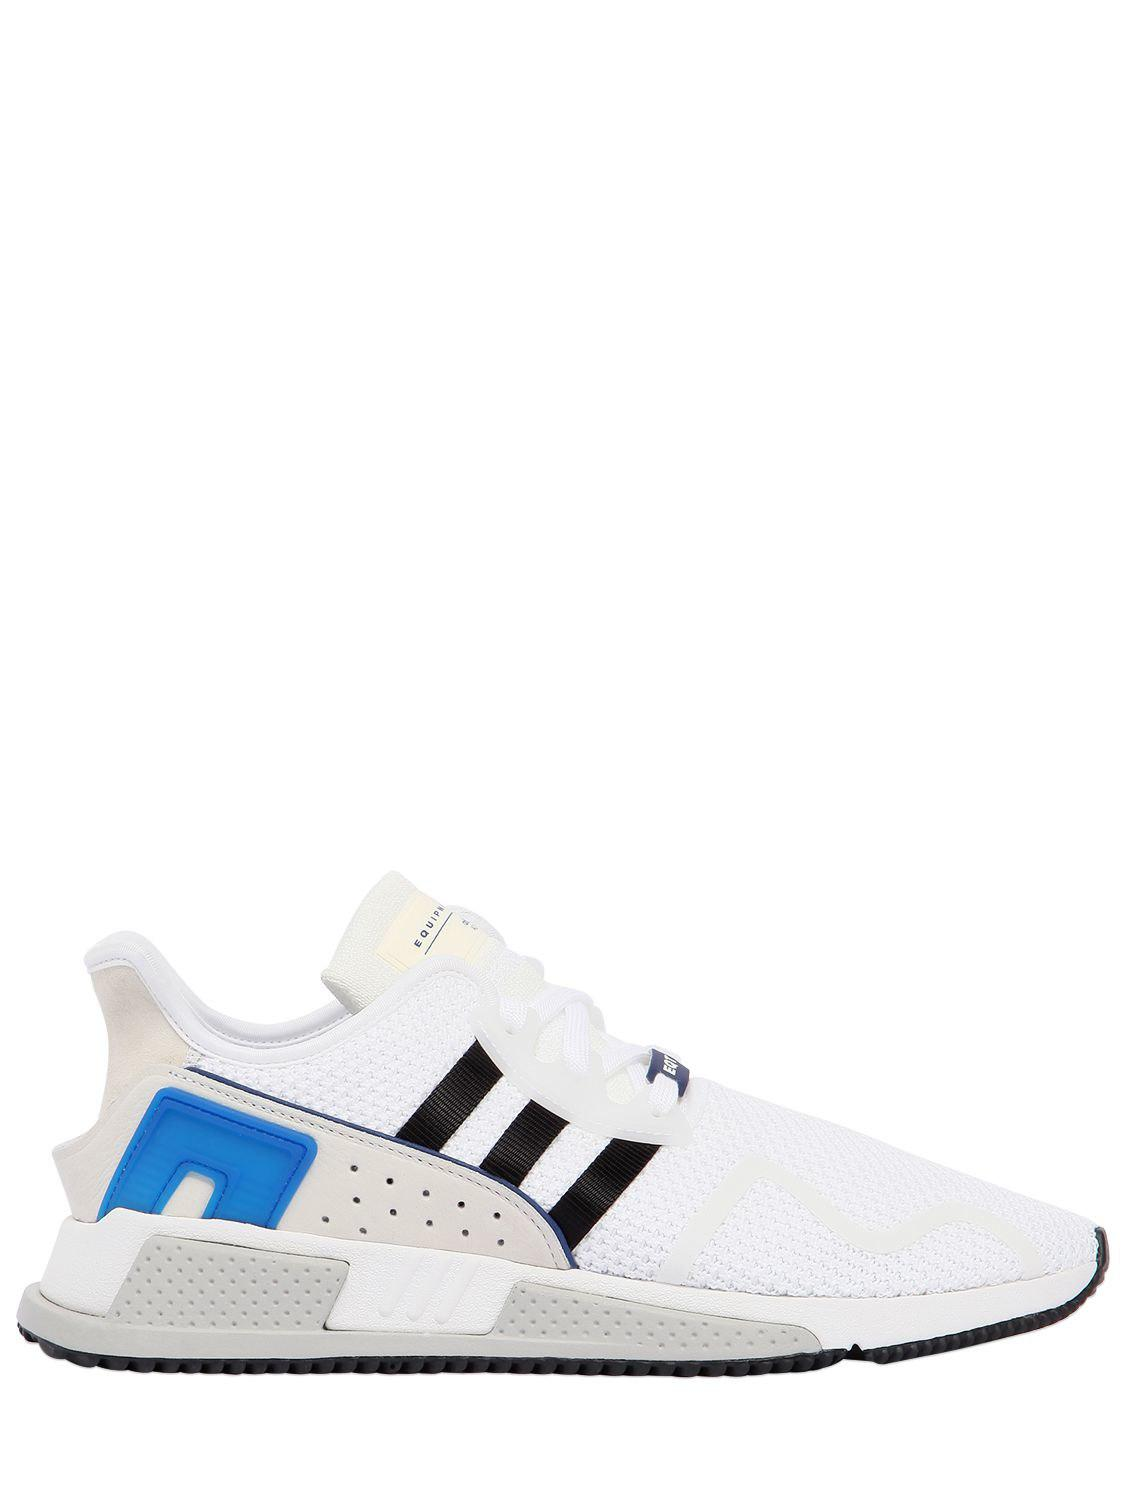 quality design 869c2 fc224 Adidas Originals - White Eqt Cushion Adv Sneakers for Men - Lyst. View  fullscreen